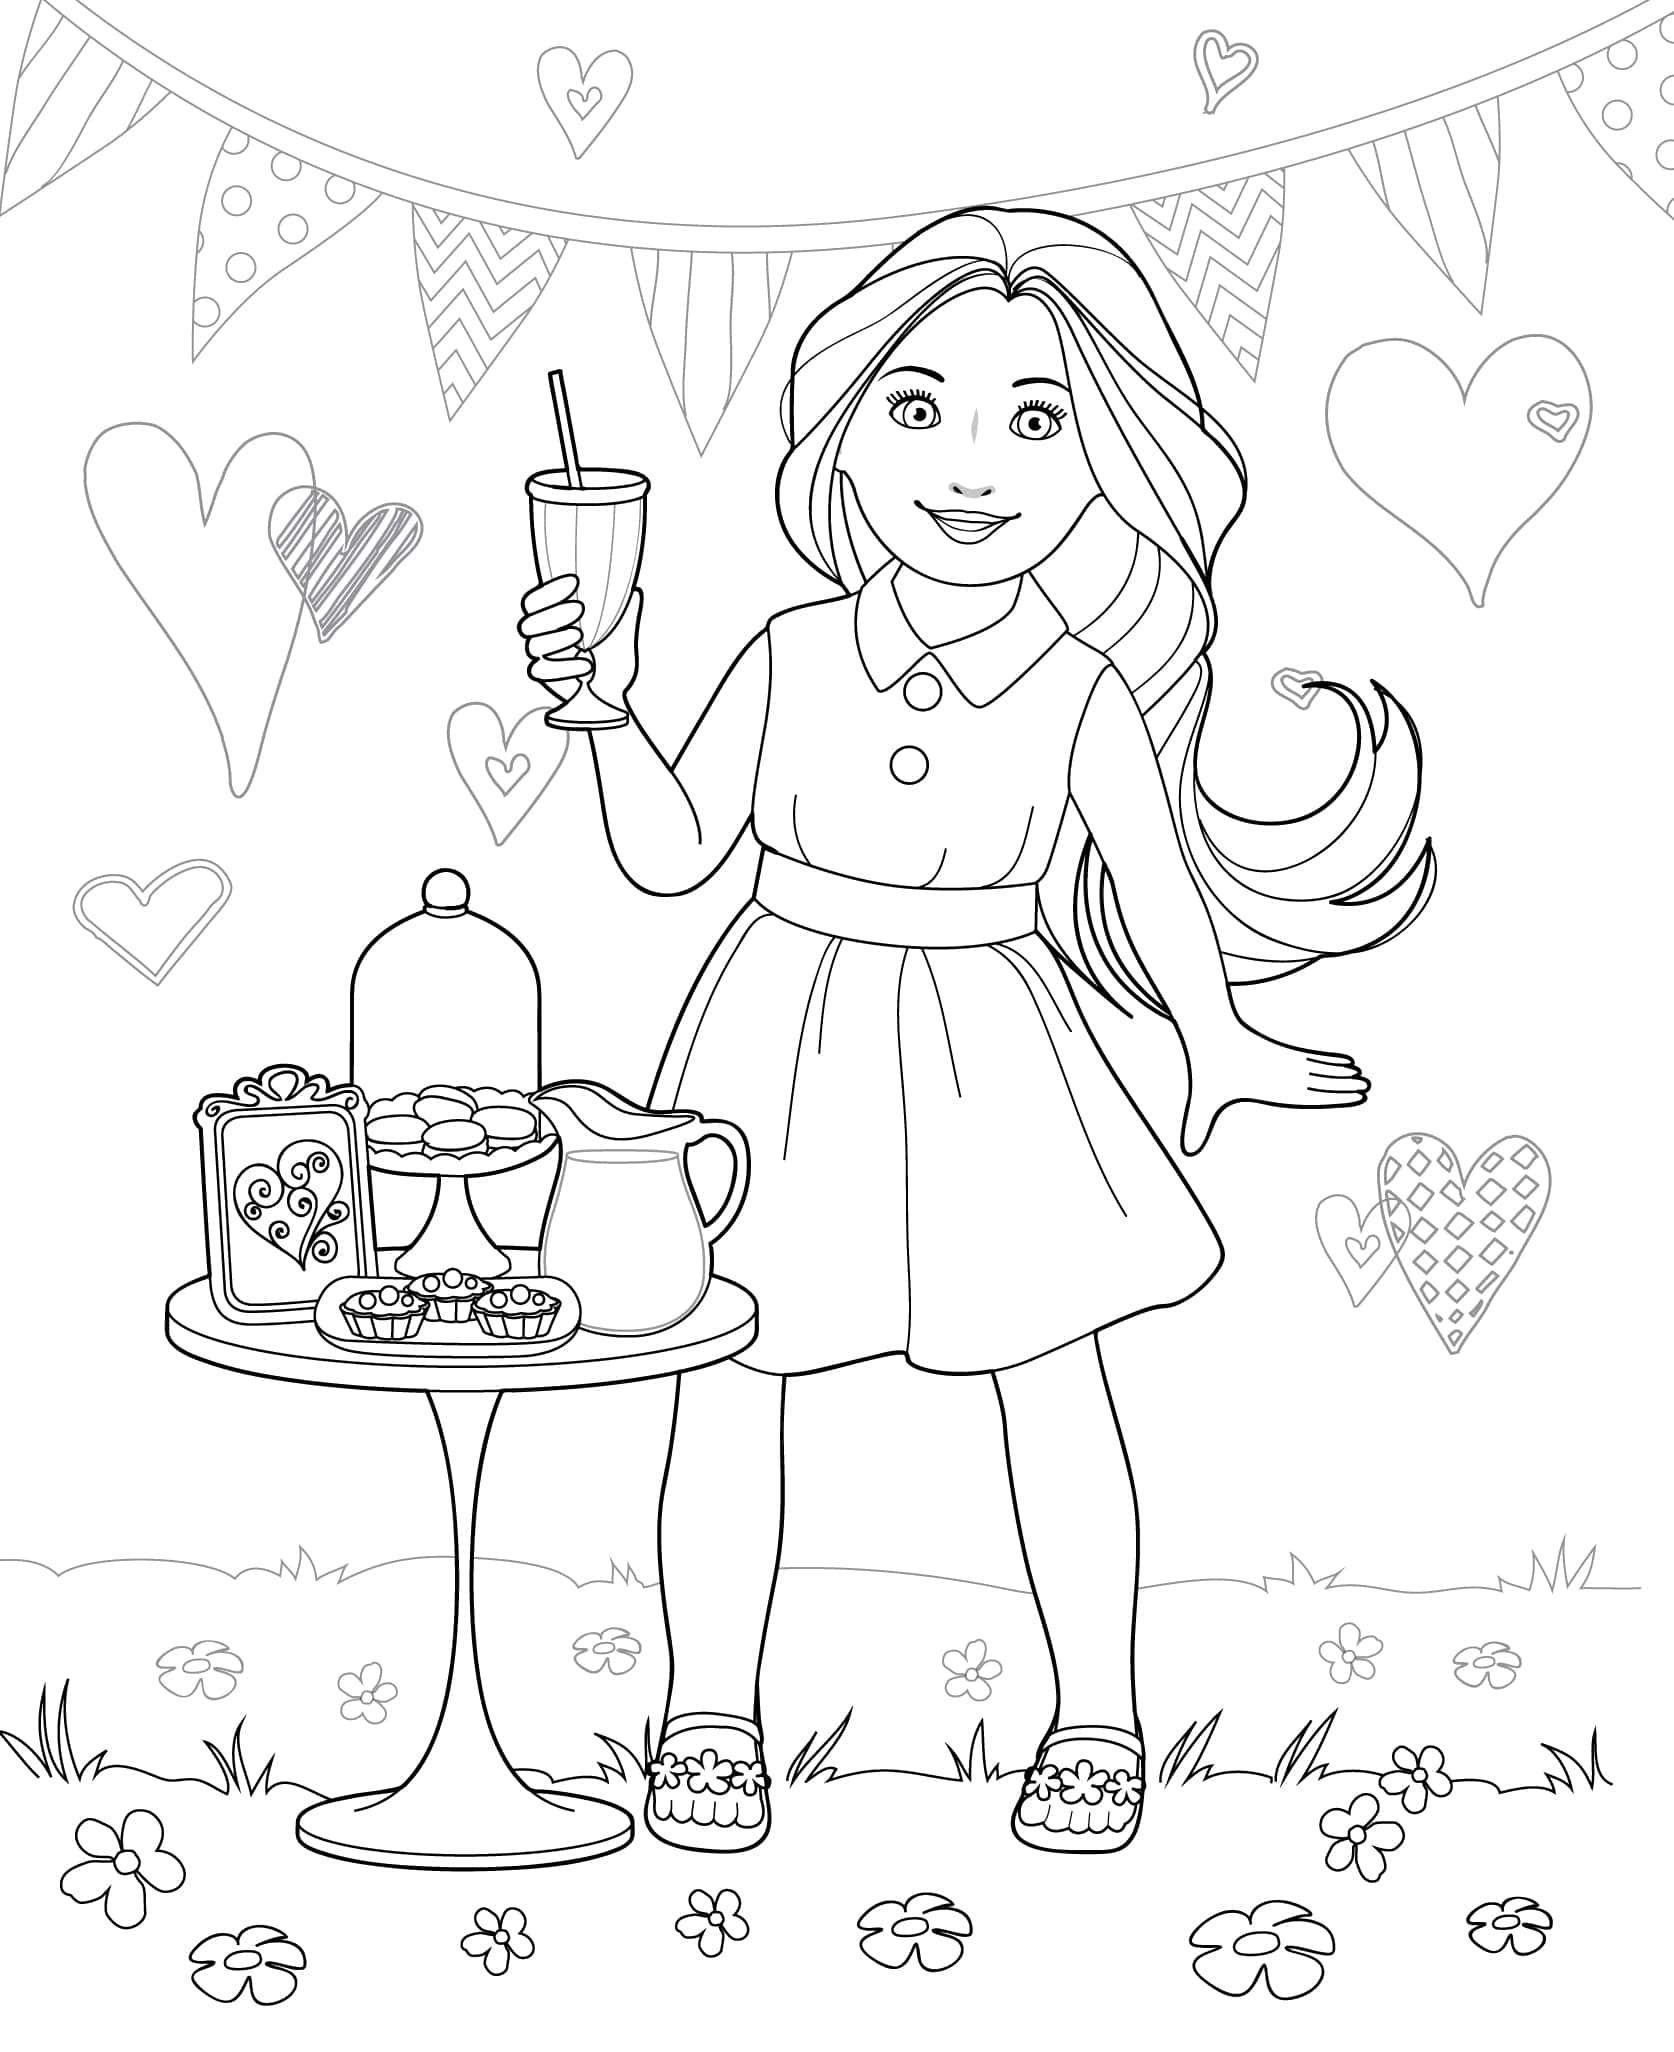 Printable Doll Coloring Pages Coloring Books Coloring Pages Coloring Pages For Girls